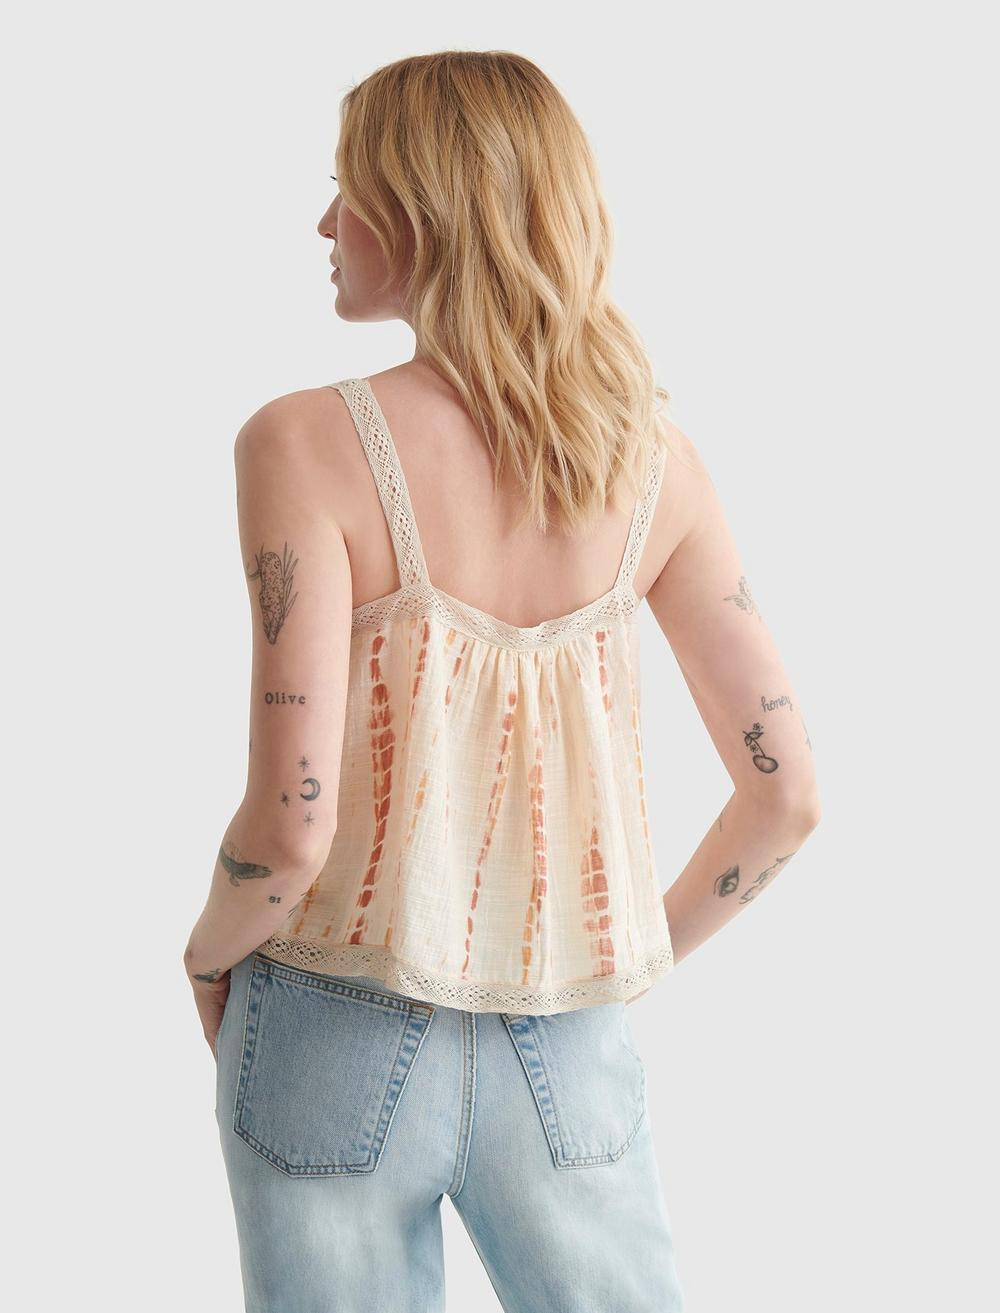 WOVEN SWING CAMI, image 5